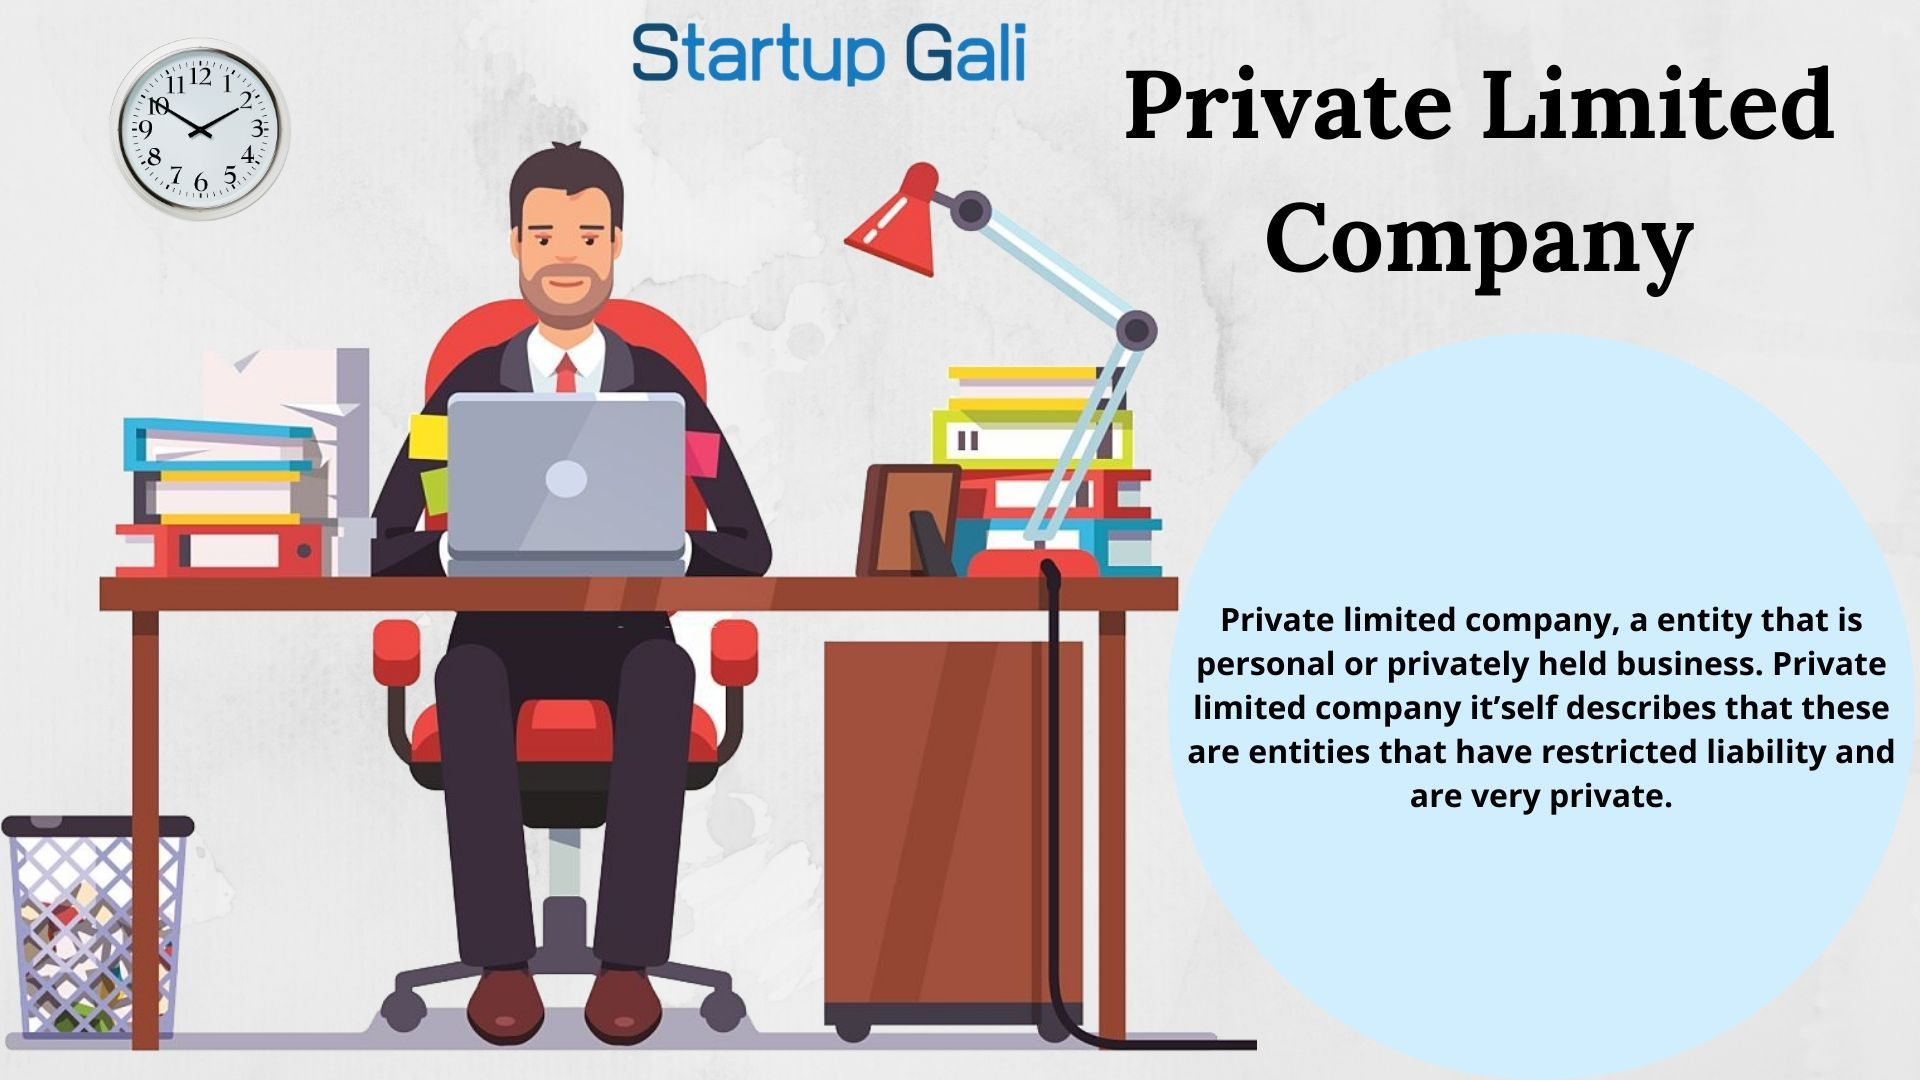 Private Limited Company An Entity That Is Personal Or Privately